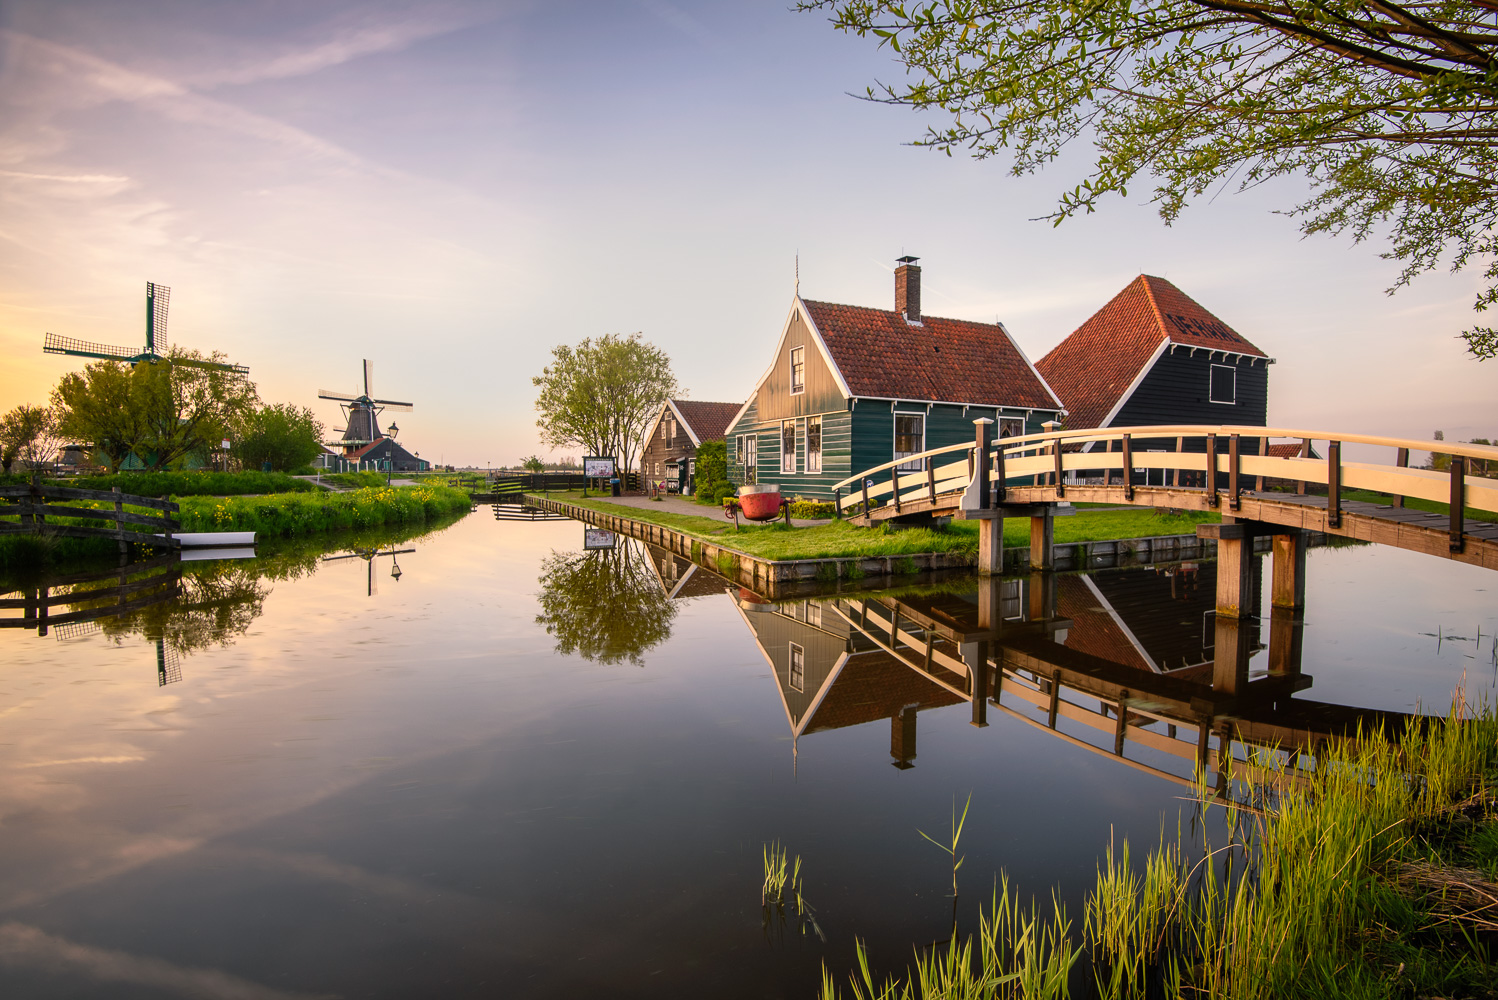 Dutch light - Zaanse Schans, Netherlands